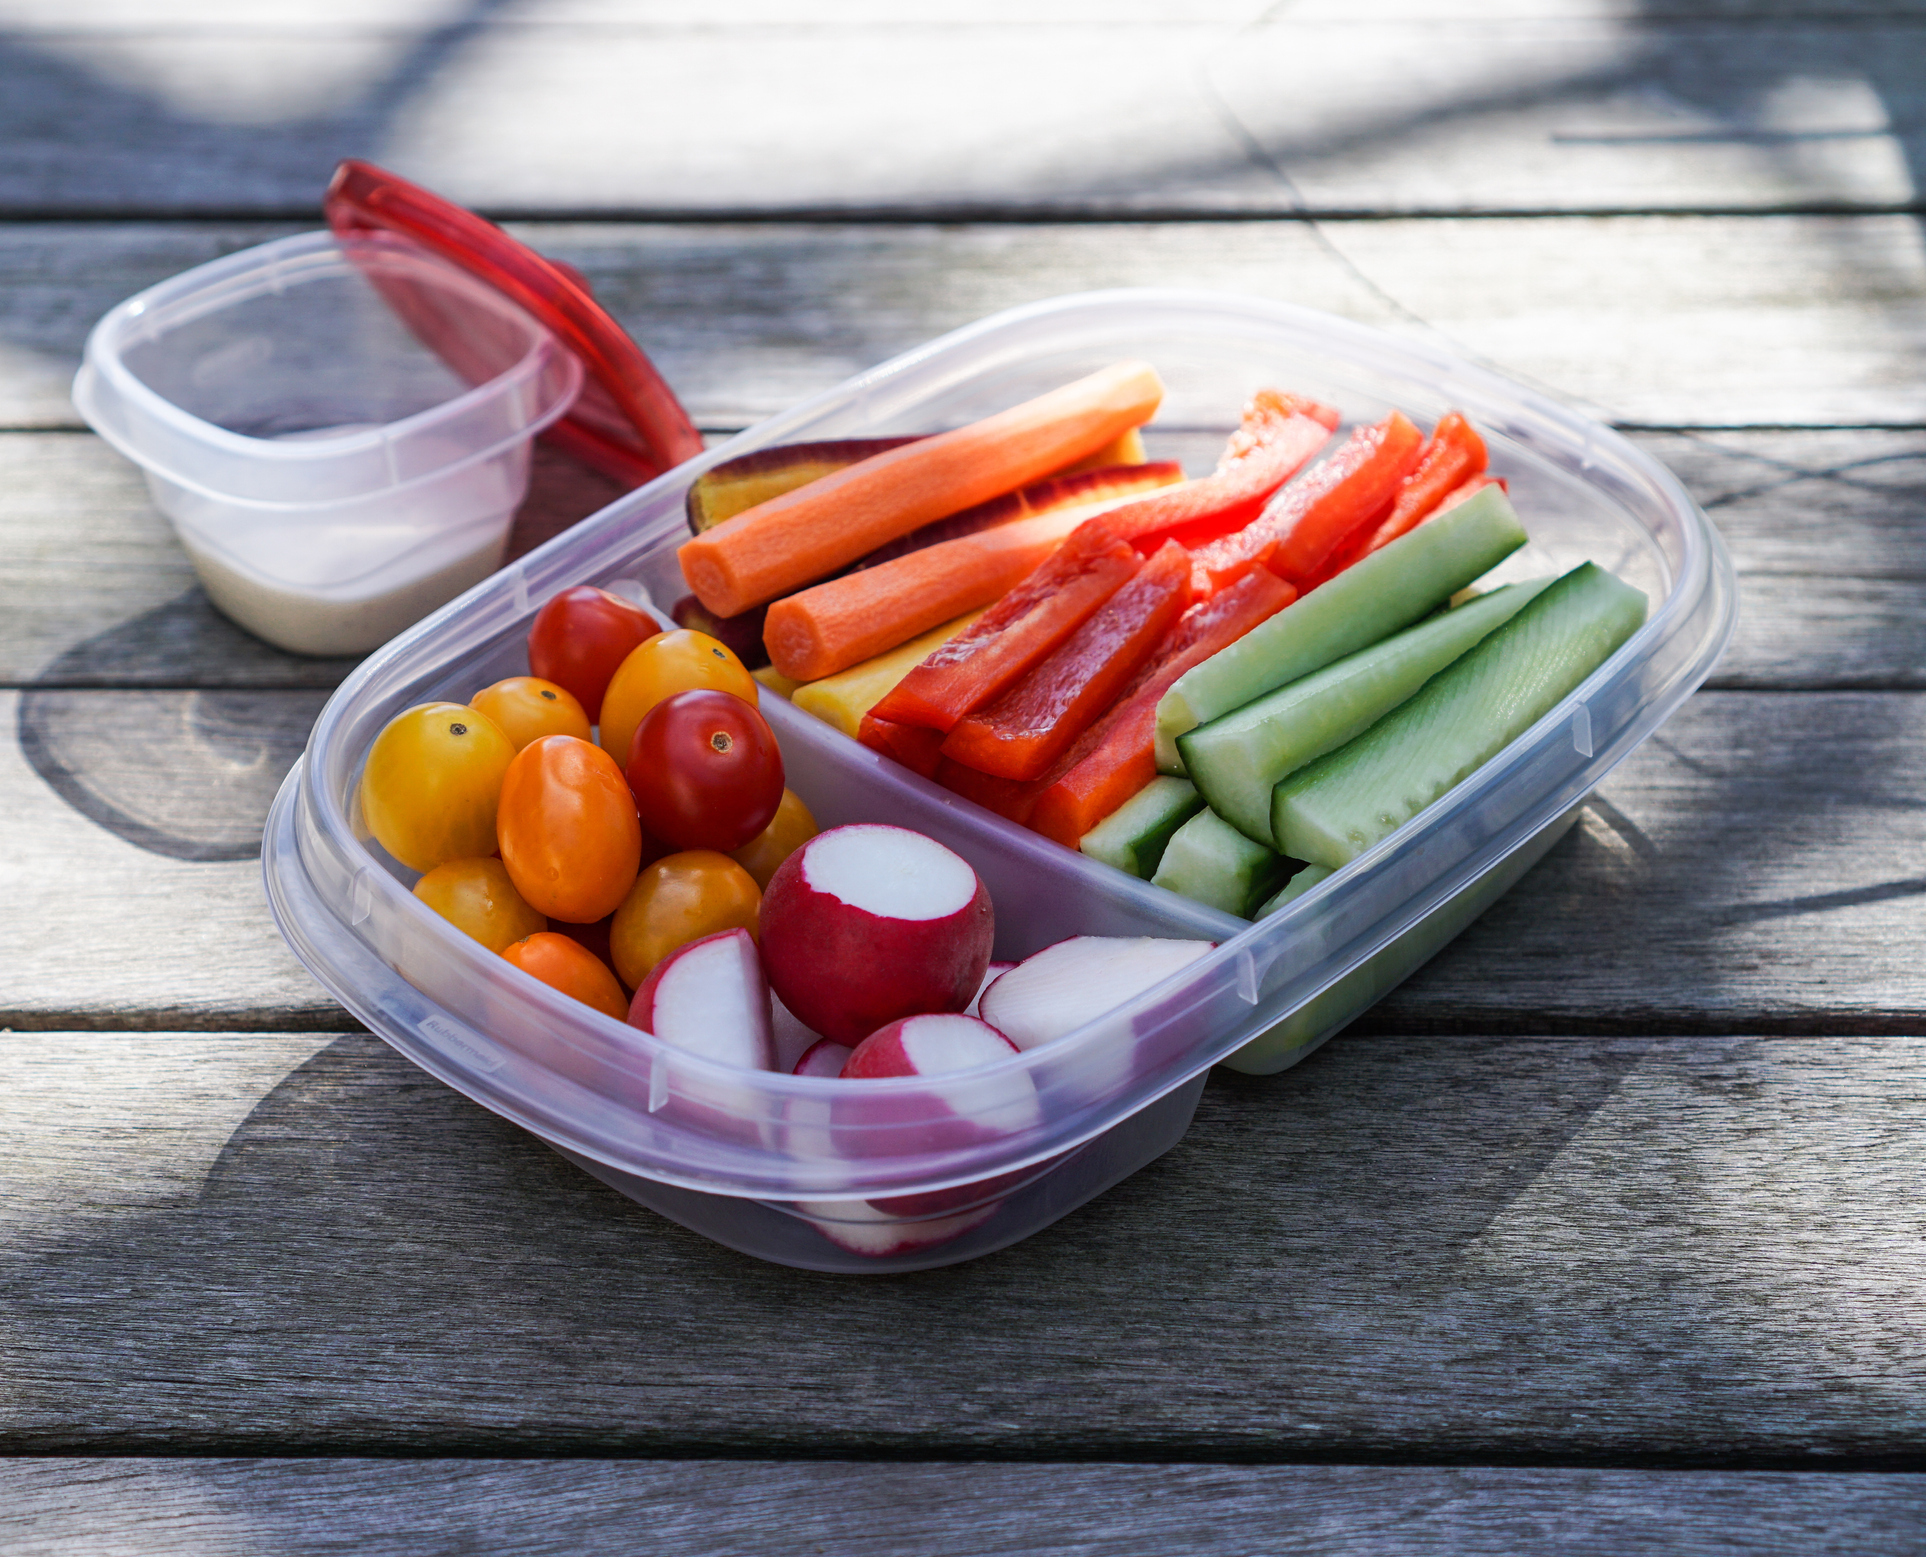 To go container of various vegetables